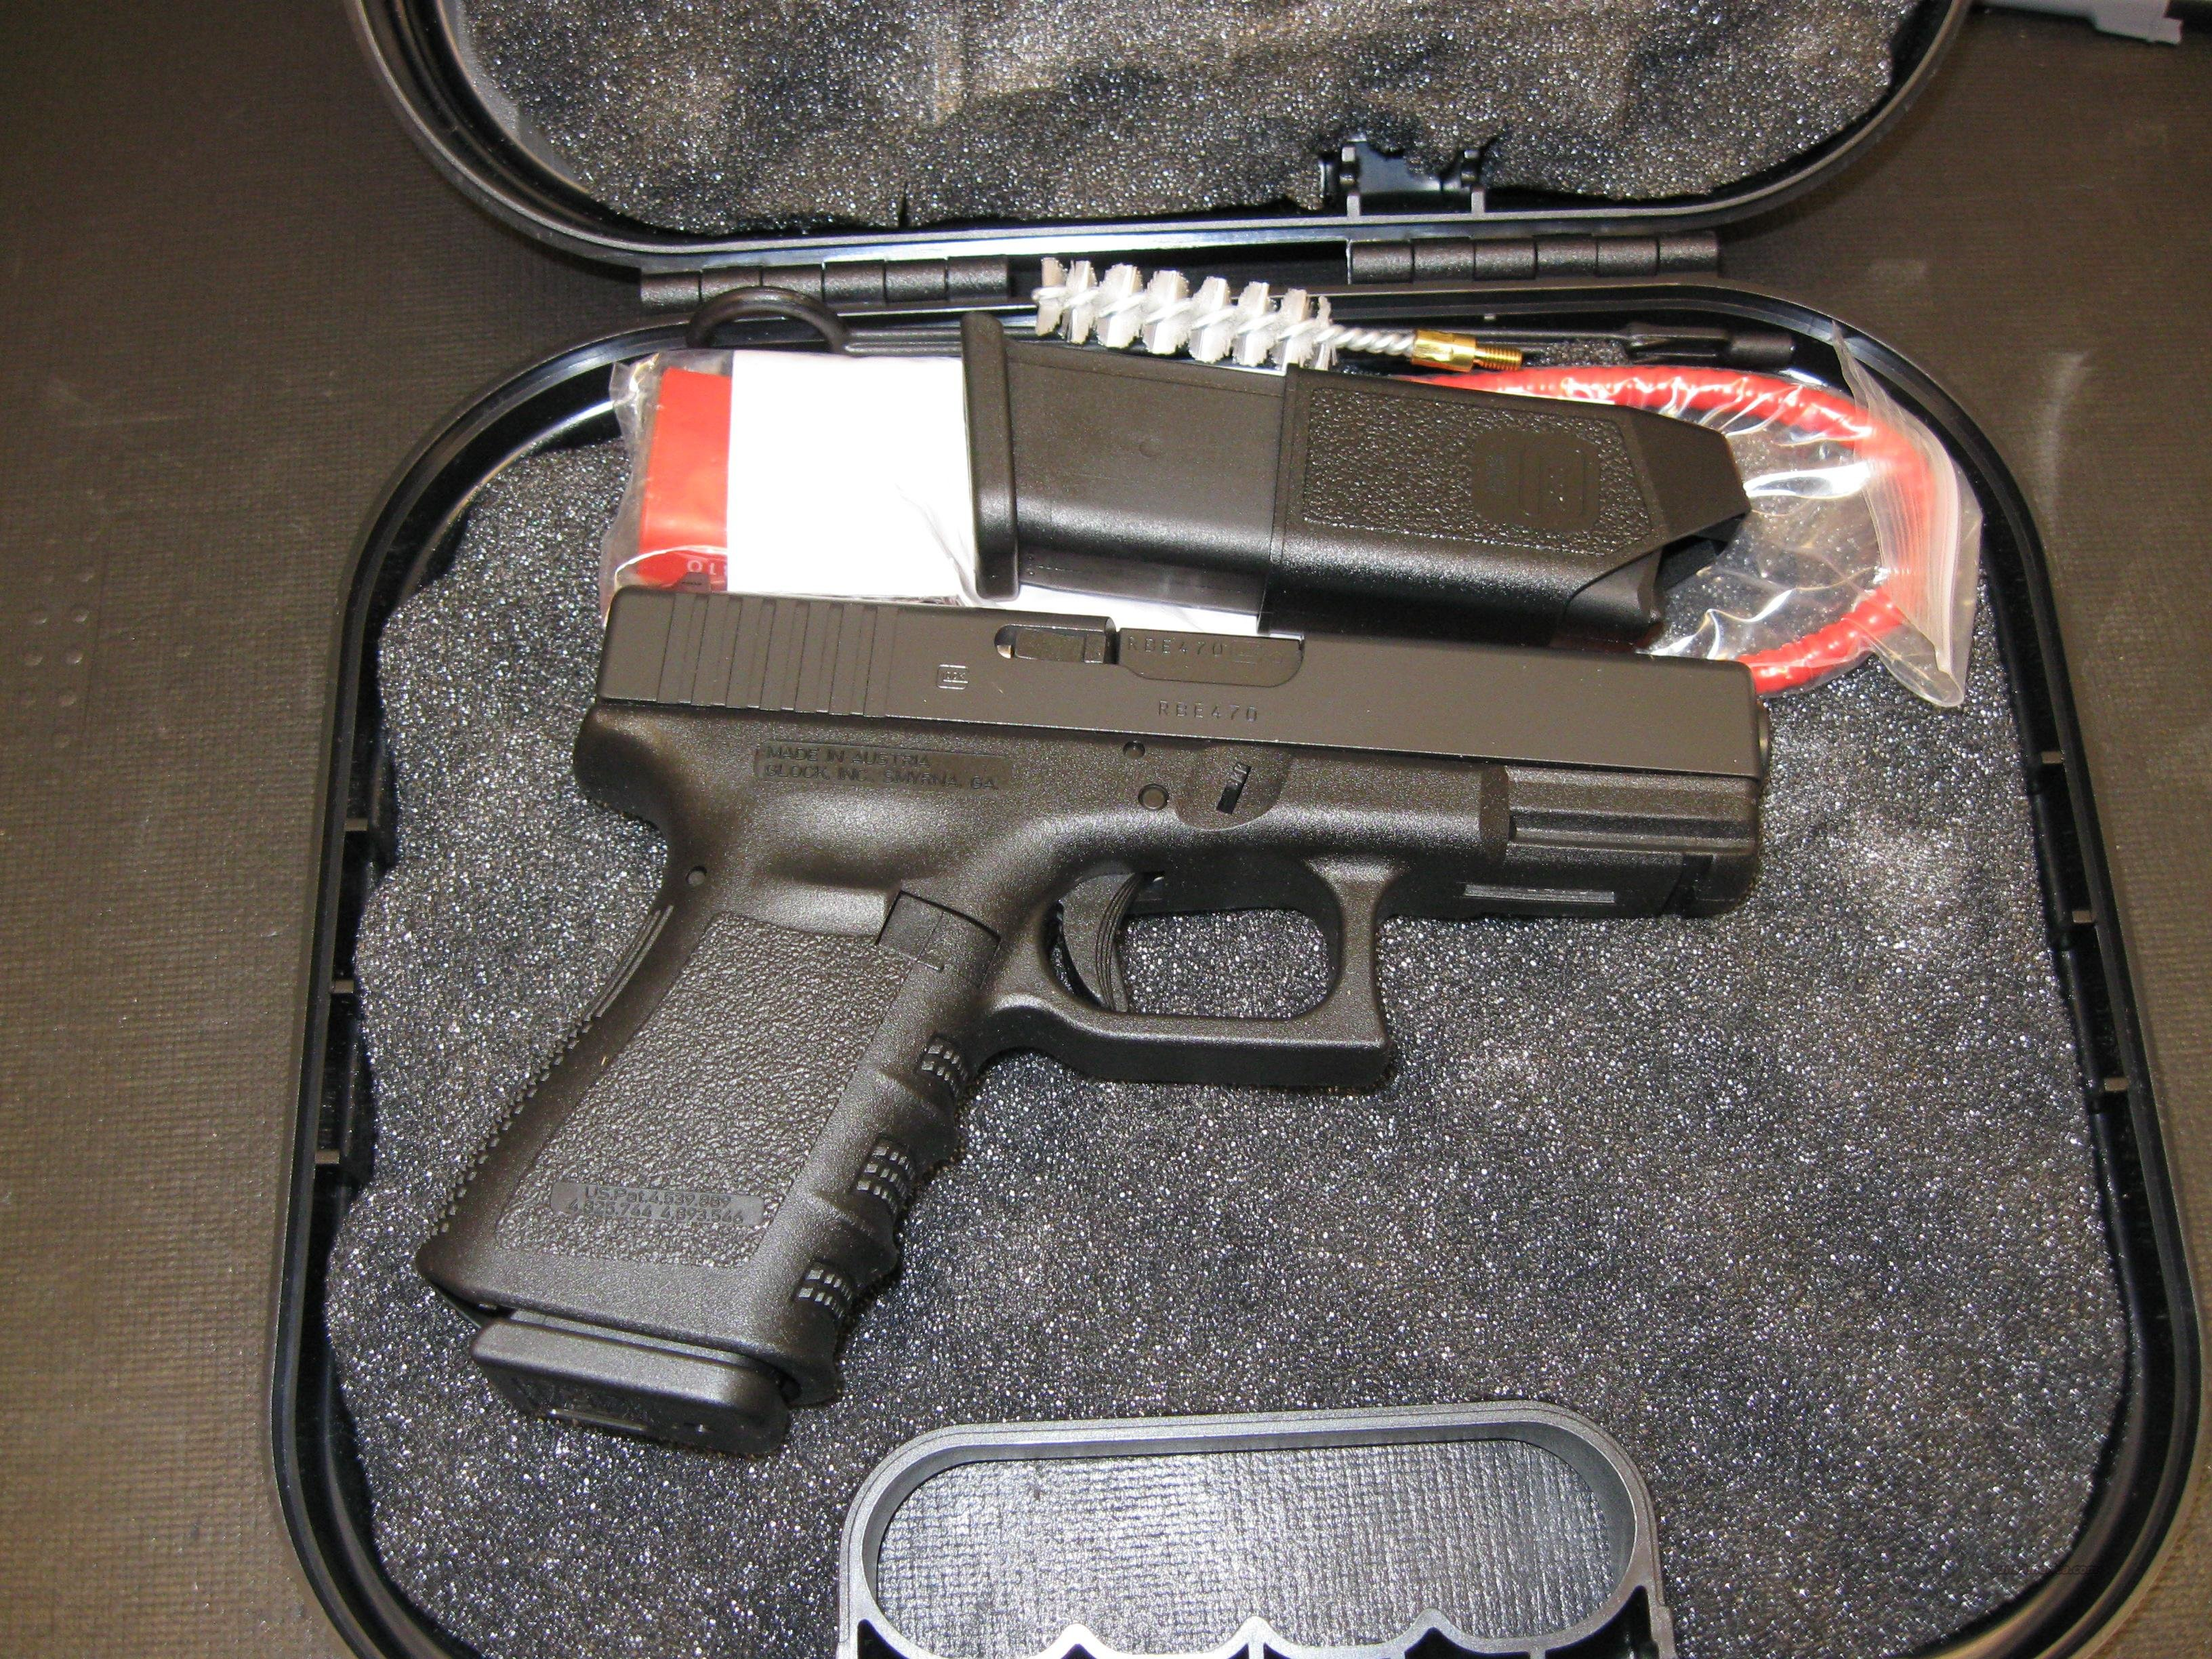 Glock Model 23 Compact Pistol PI2350201, 40 S&W, 4.02 in, Polymer Grip, Black Finish, Fixed Sights, 10 Rd  Guns > Pistols > Glock Pistols > 23